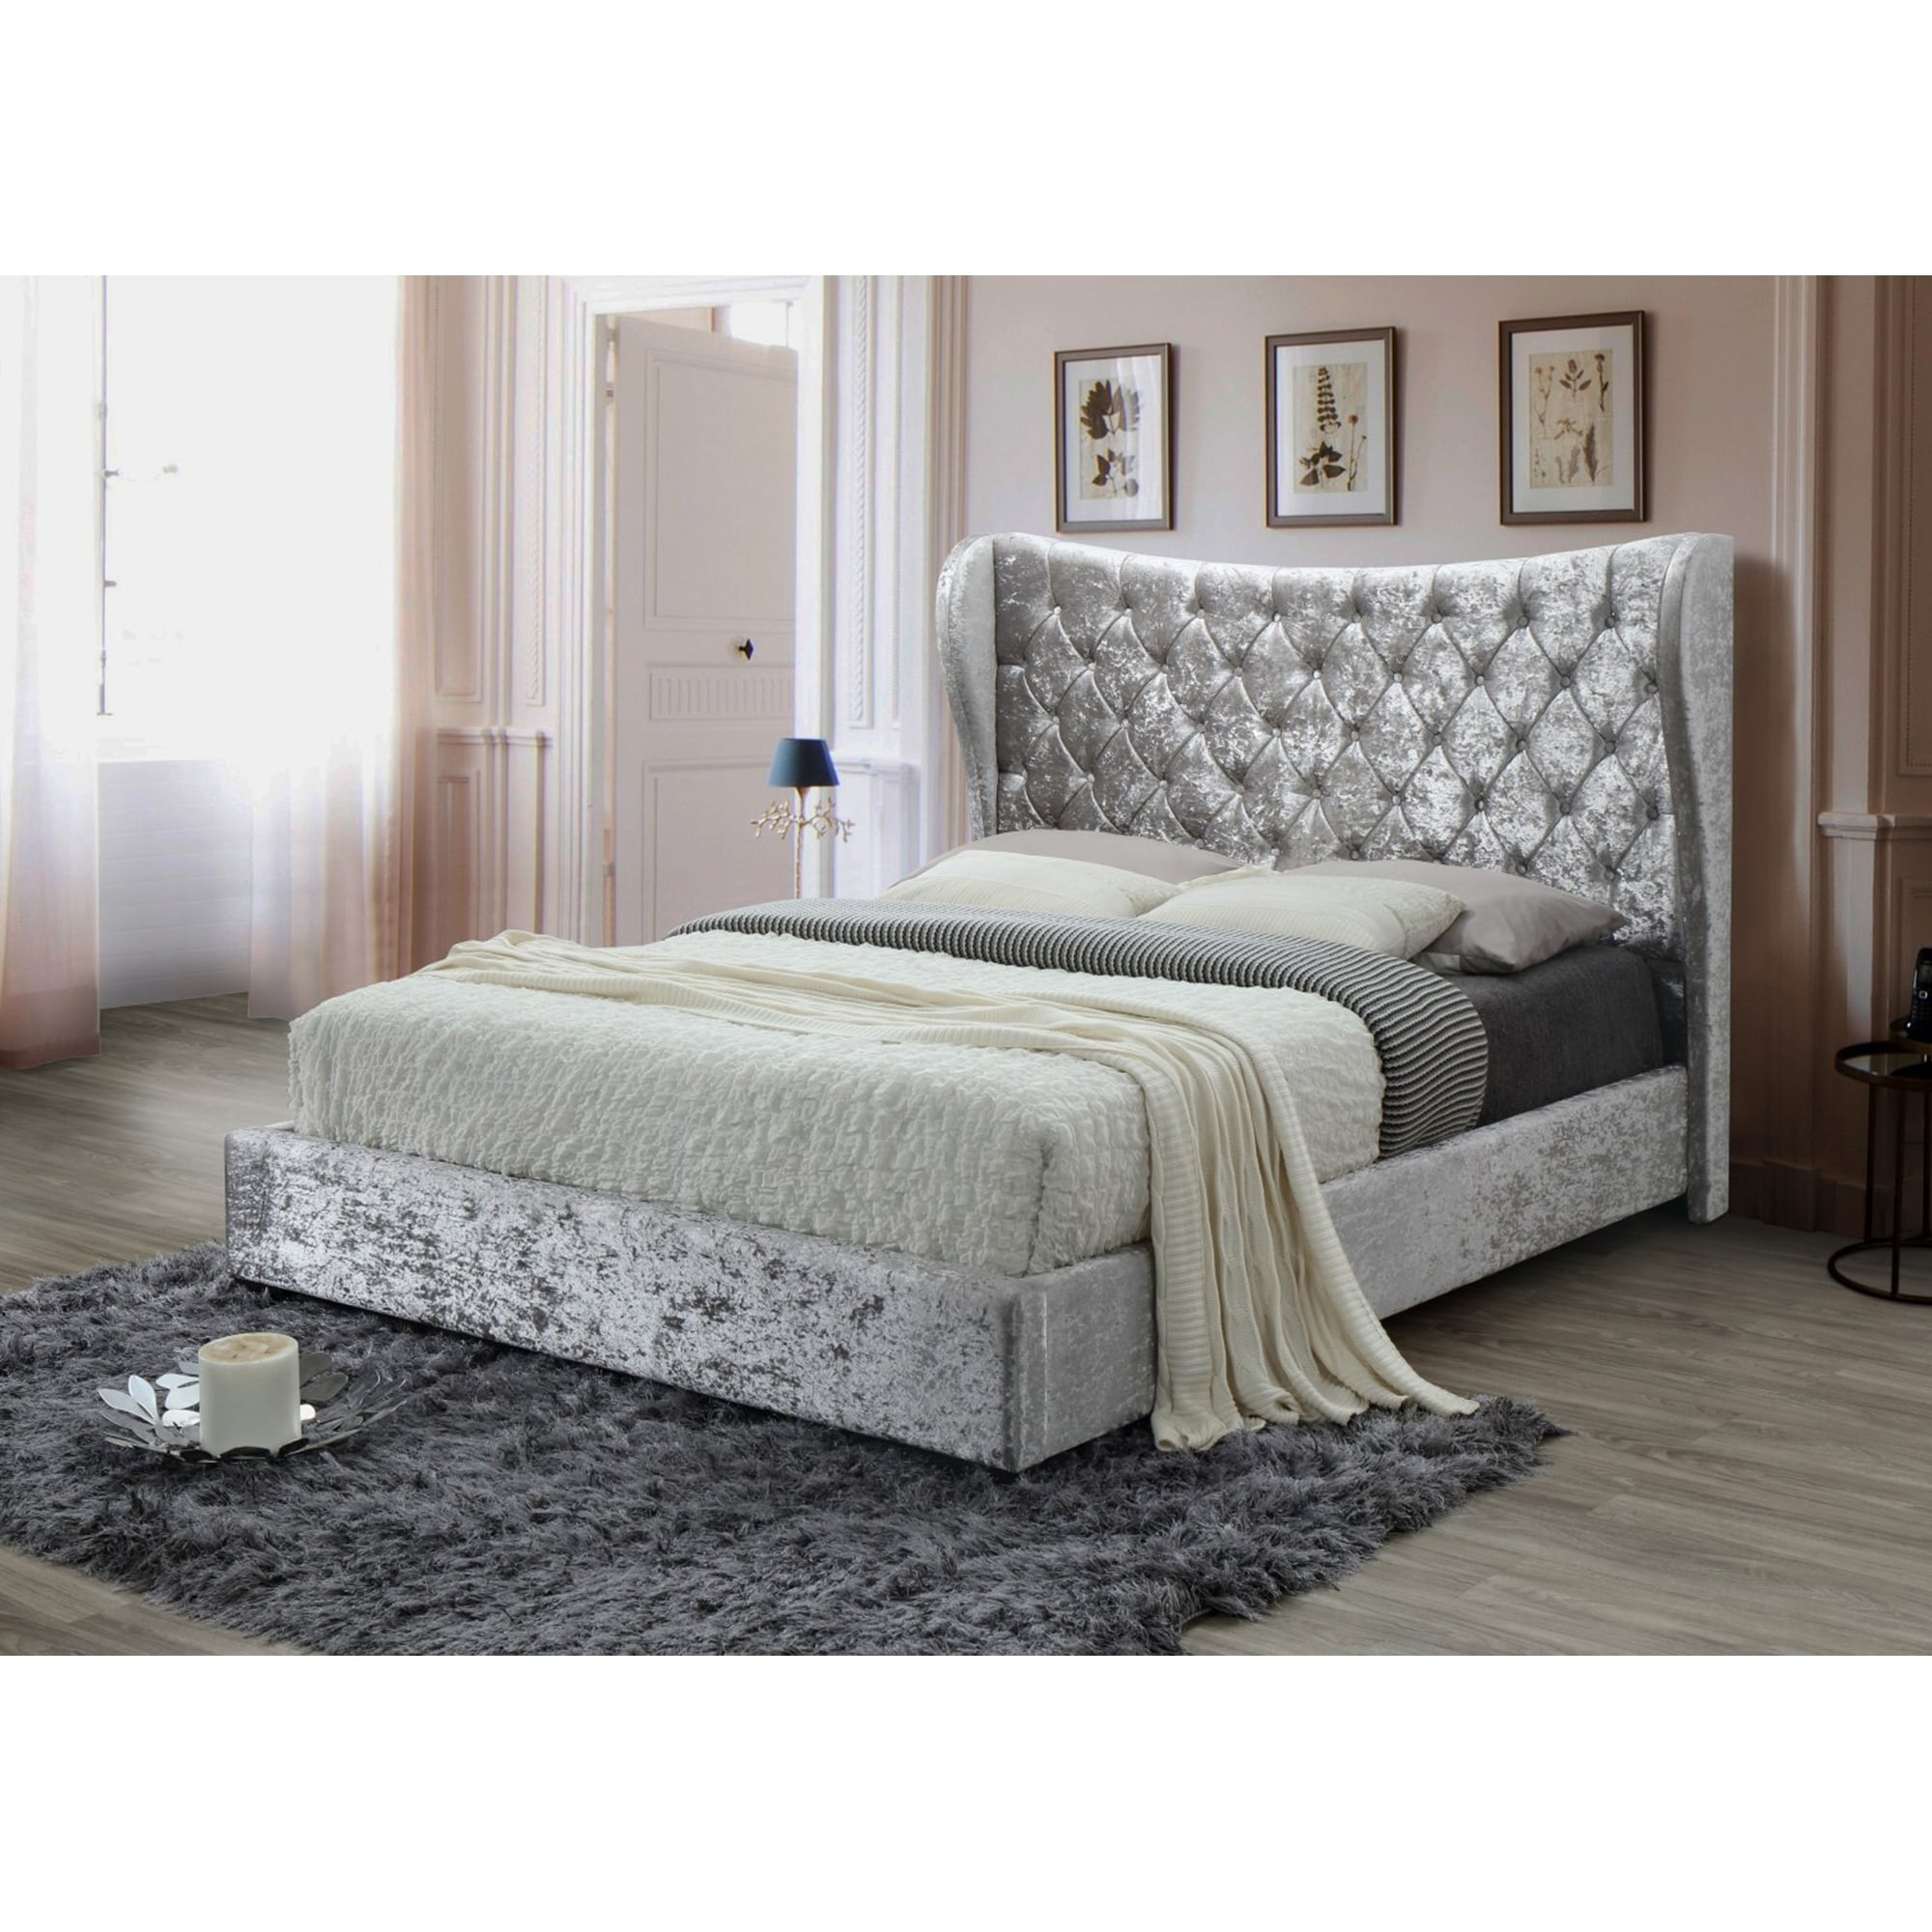 Silver Tufted Modern Crushed Velvet Queen Platform Bed With A 67 In Tall Headboard No Box Spring Required Overstock 25613700